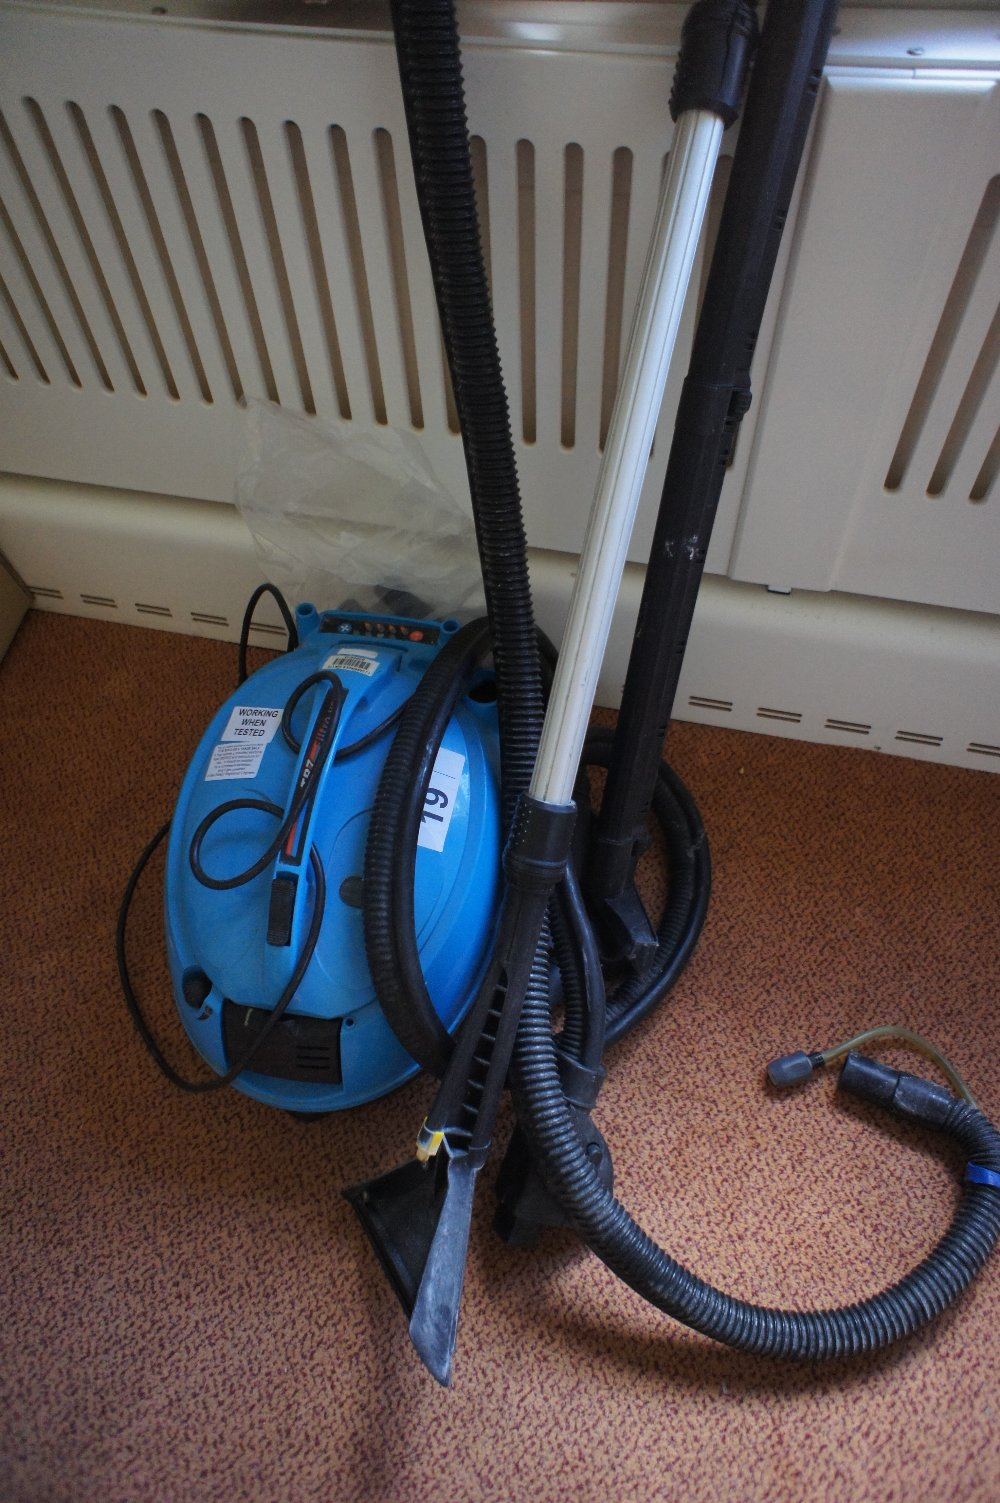 Lot 19 - 1 Filtro vap TR7 steam cleaner (located in room 7, Davey Court)